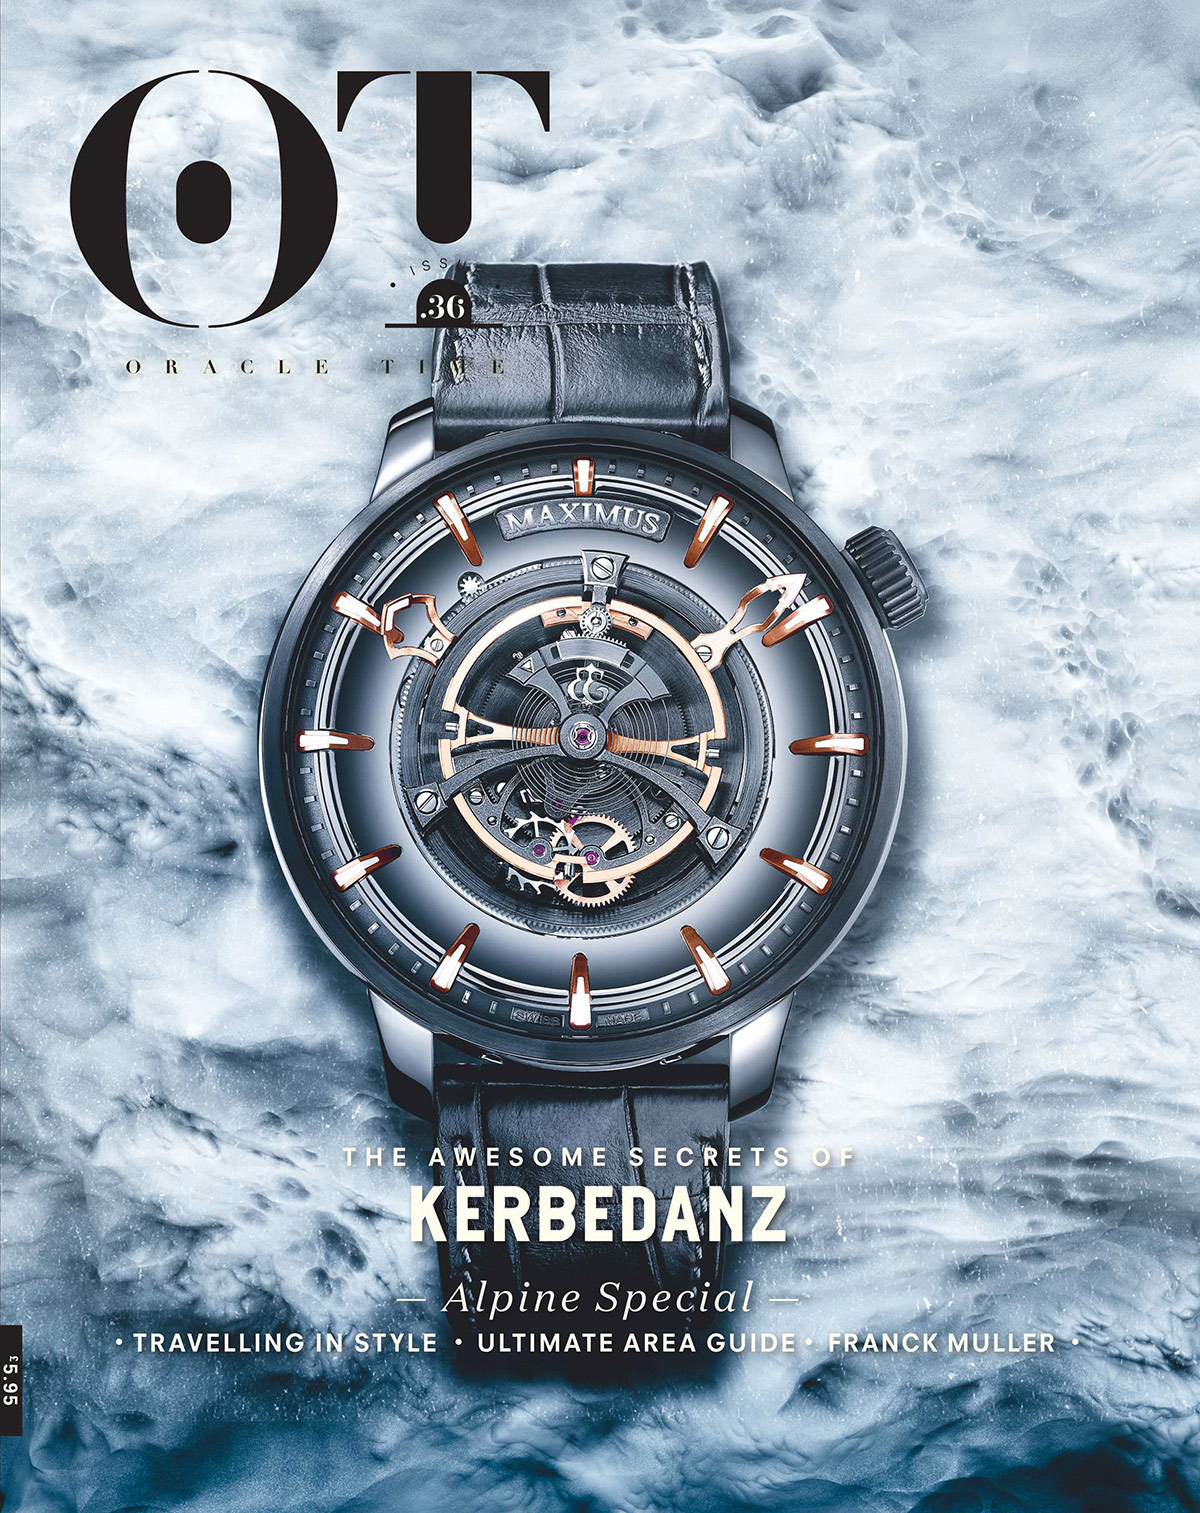 Oracle Time Issue 36